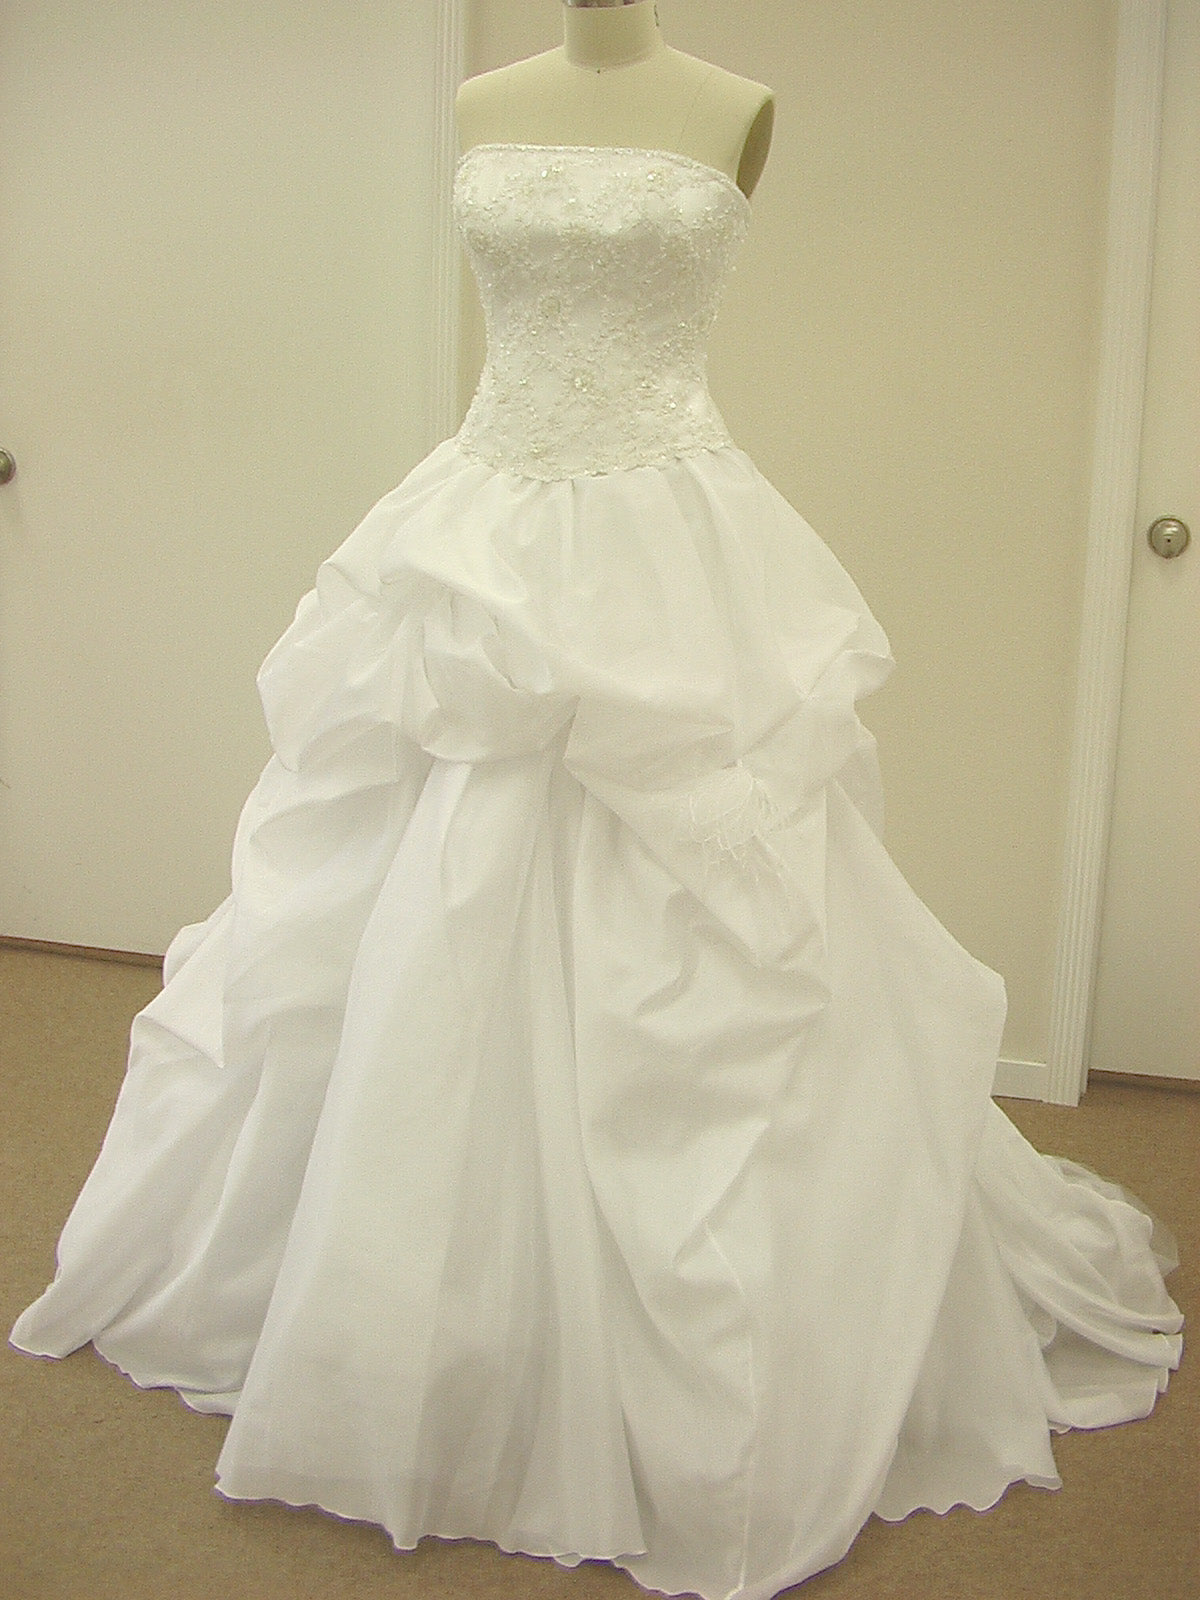 Pattis 958 Allete Ivory size 12 In Stock Wedding Dress - Tom's Bridal